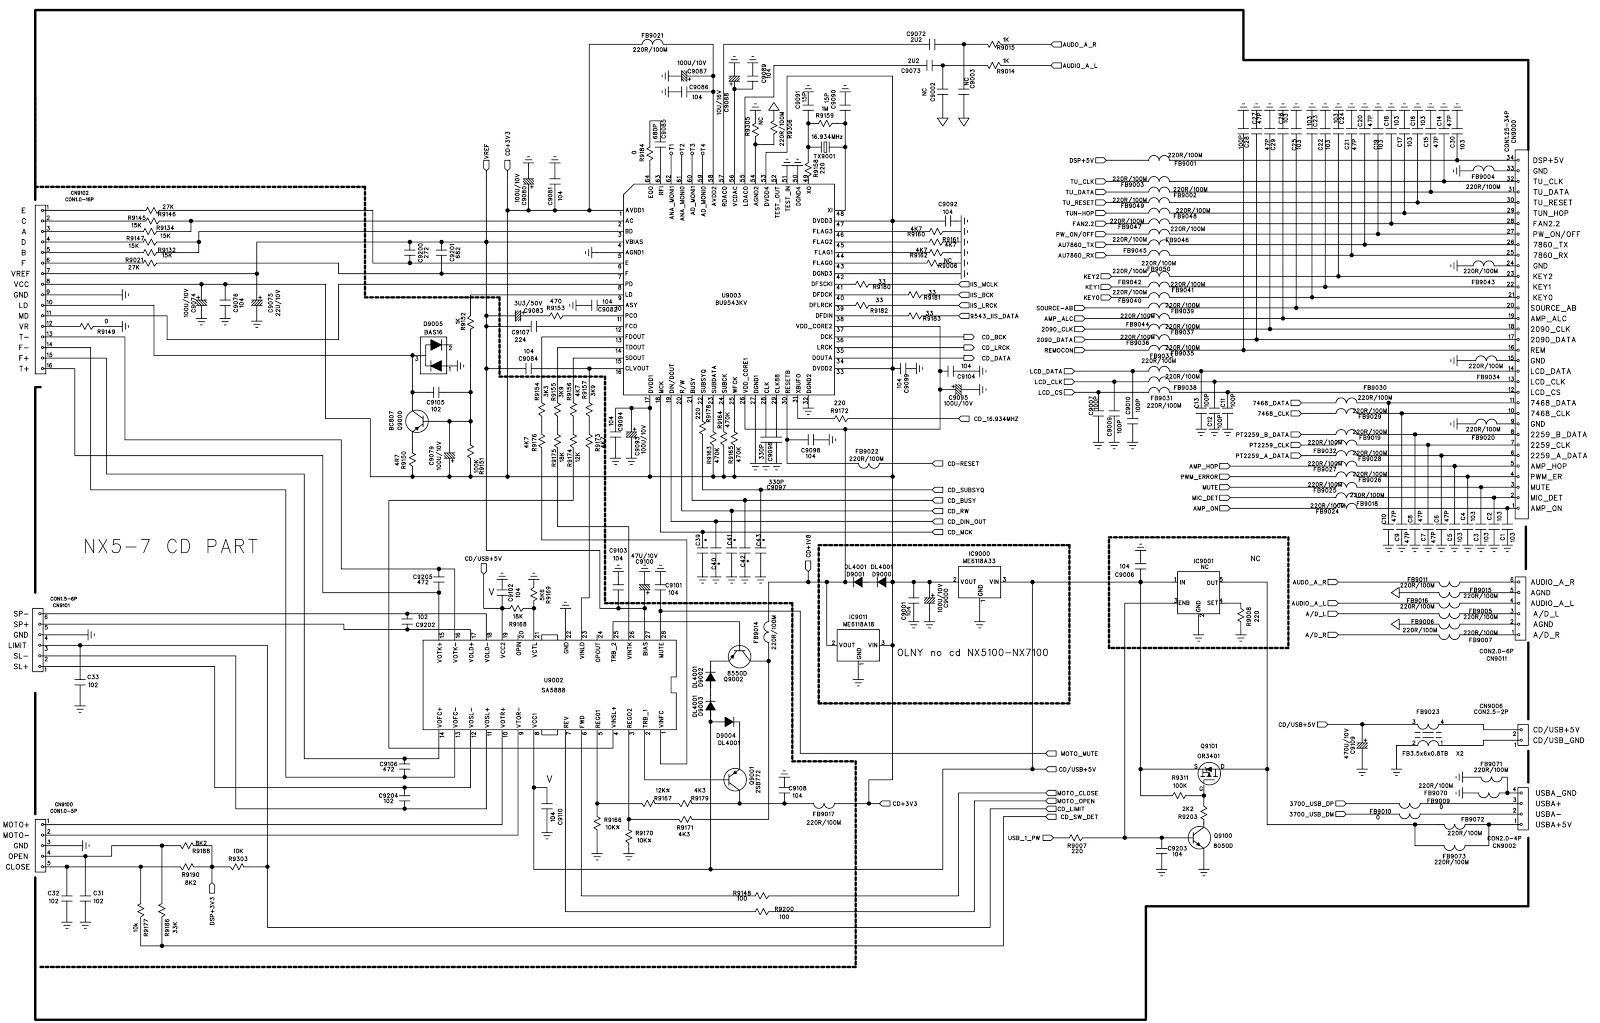 Electro Help Philips Ntrx500 Mini Hi Fi System Circuit Diagram Disassemble Procedure